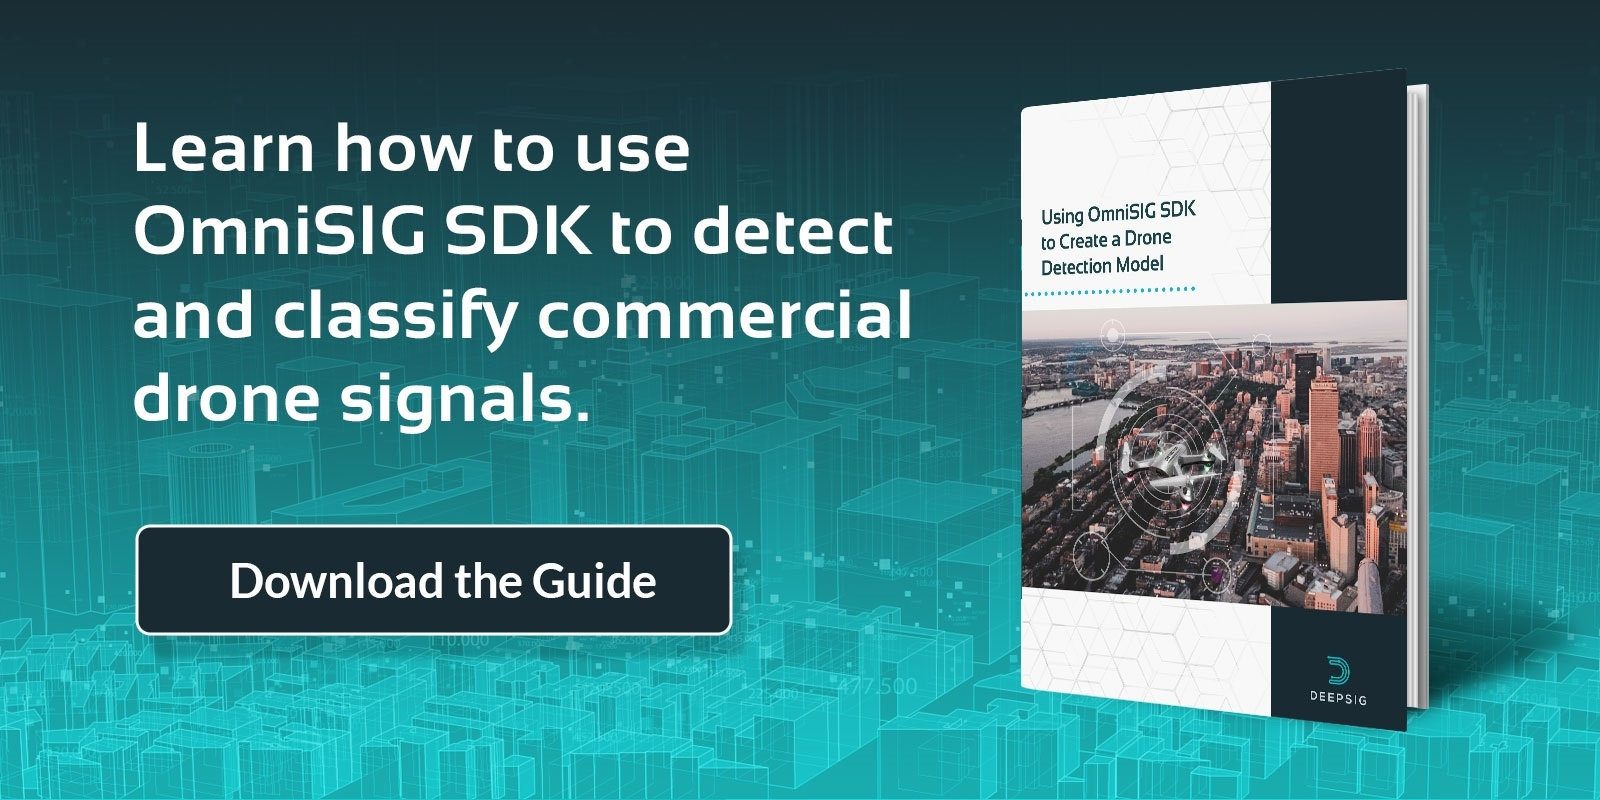 Use OmniSIG SDK to detect and classify commercial drone signals - use machine learning to detect commercial drone signals